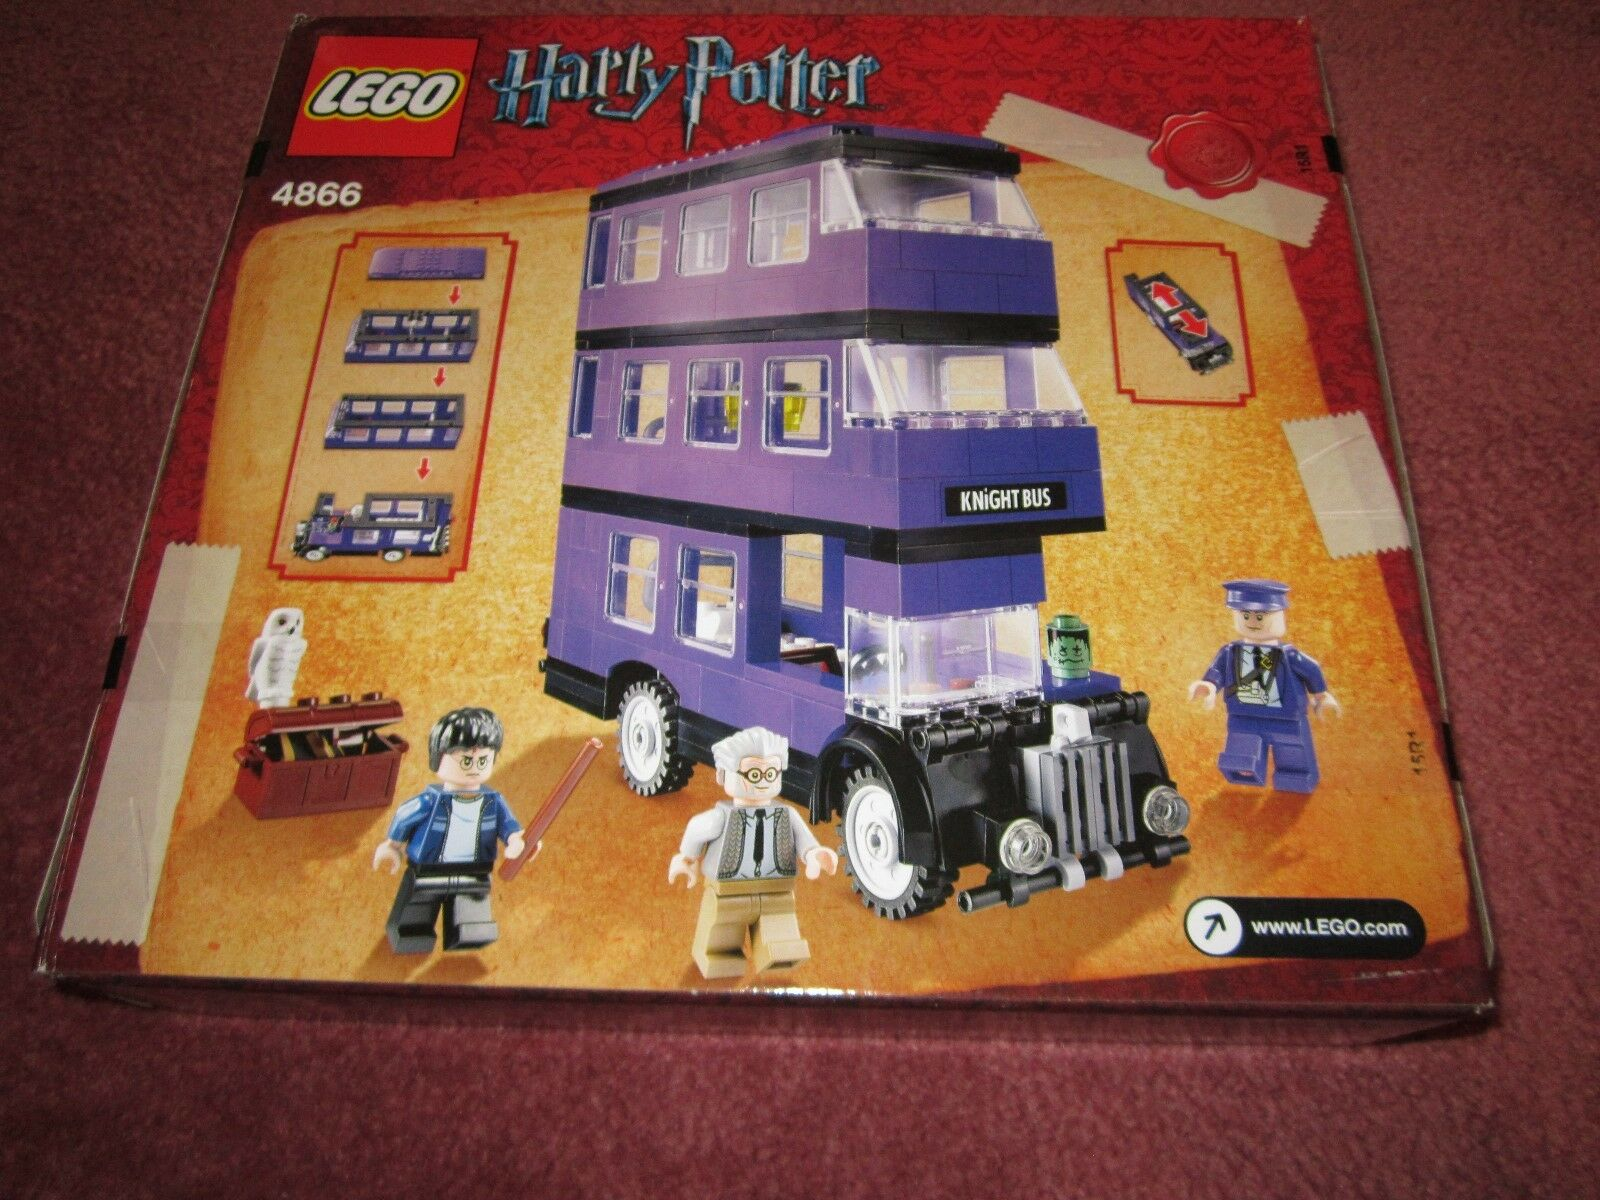 LEGO HARRY POTTER KNIGHT BUS 4866 - NEW/BOXED/SEALED - - - SEE PHOTOS 7c8ccb